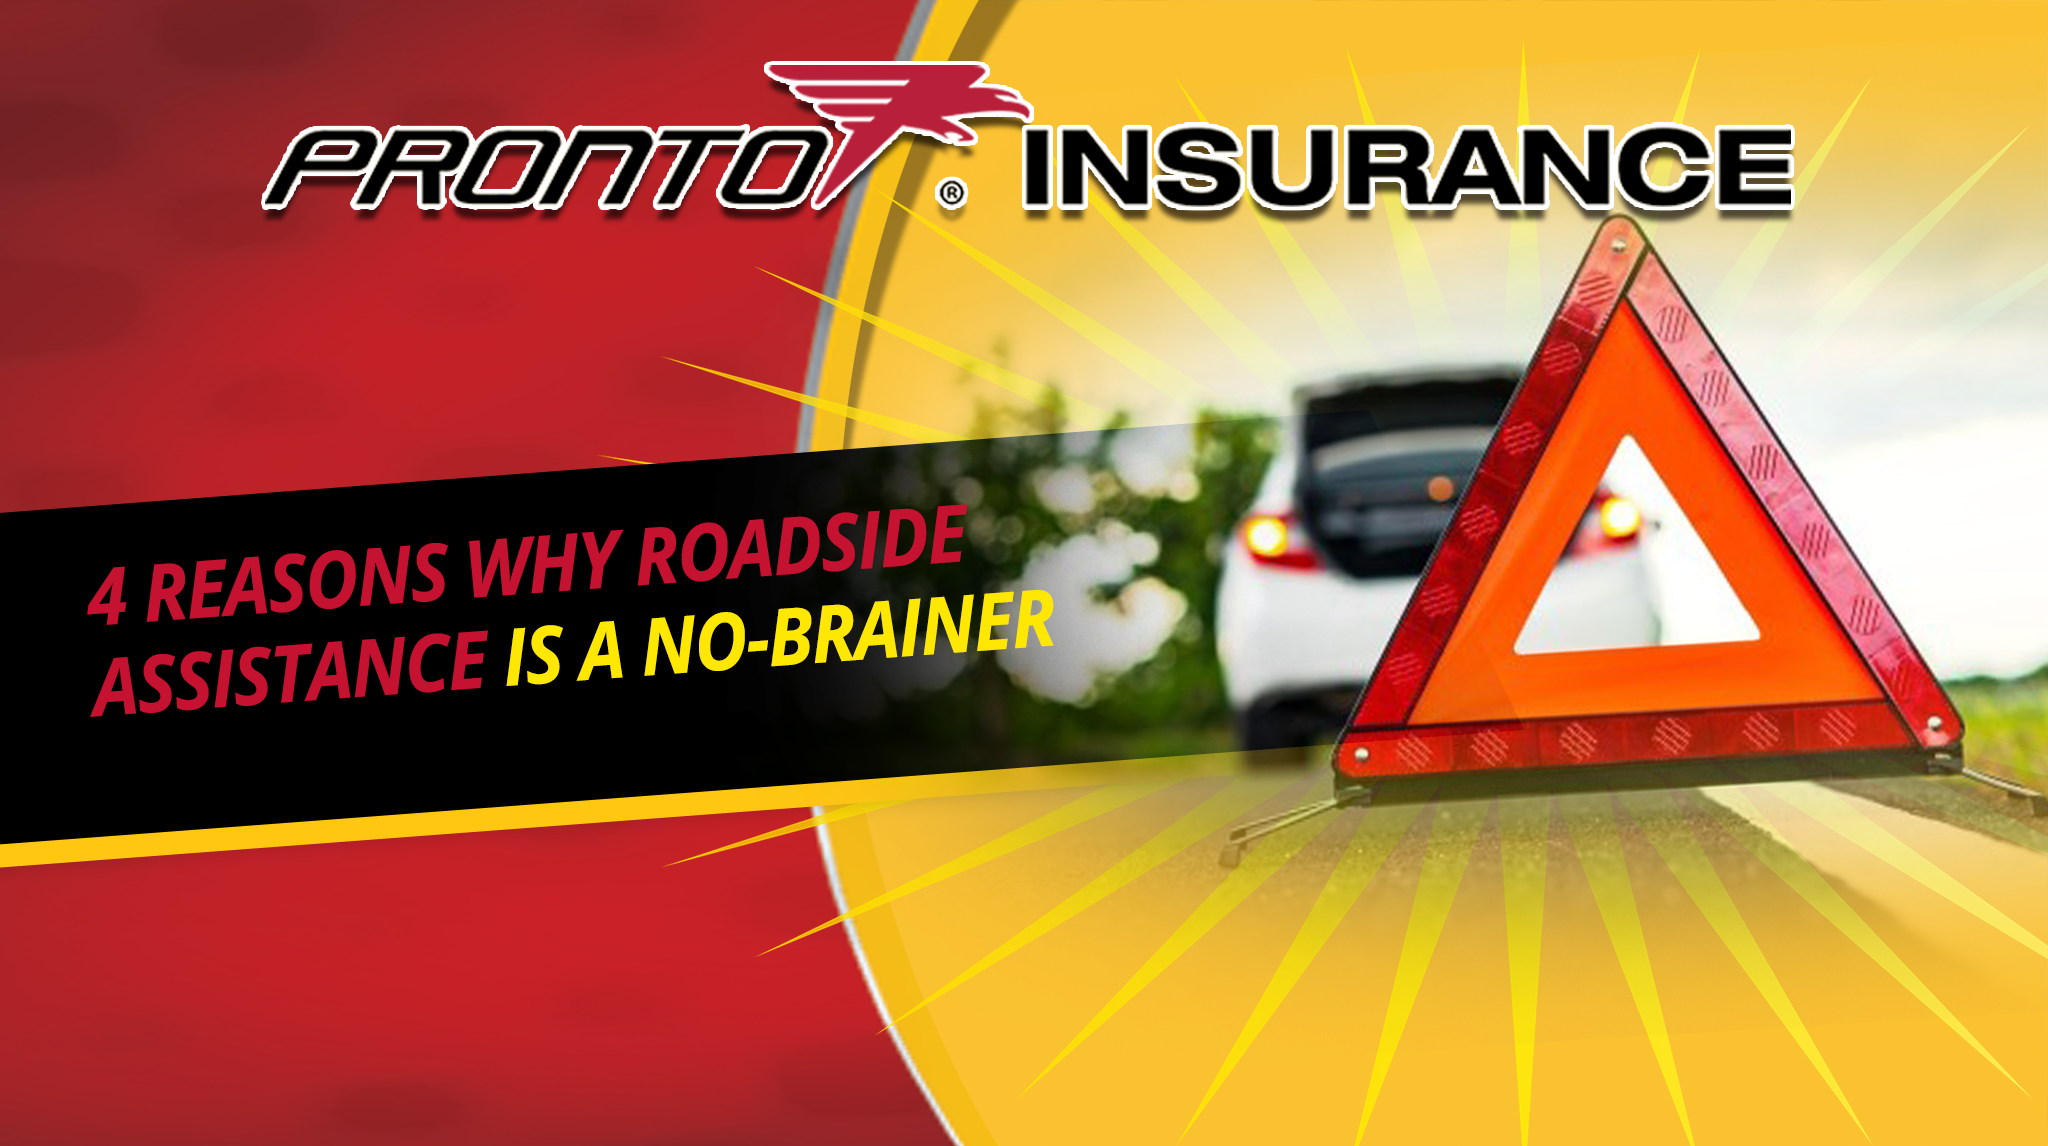 4 Reasons Why Roadside Assistance is a No-Brainer